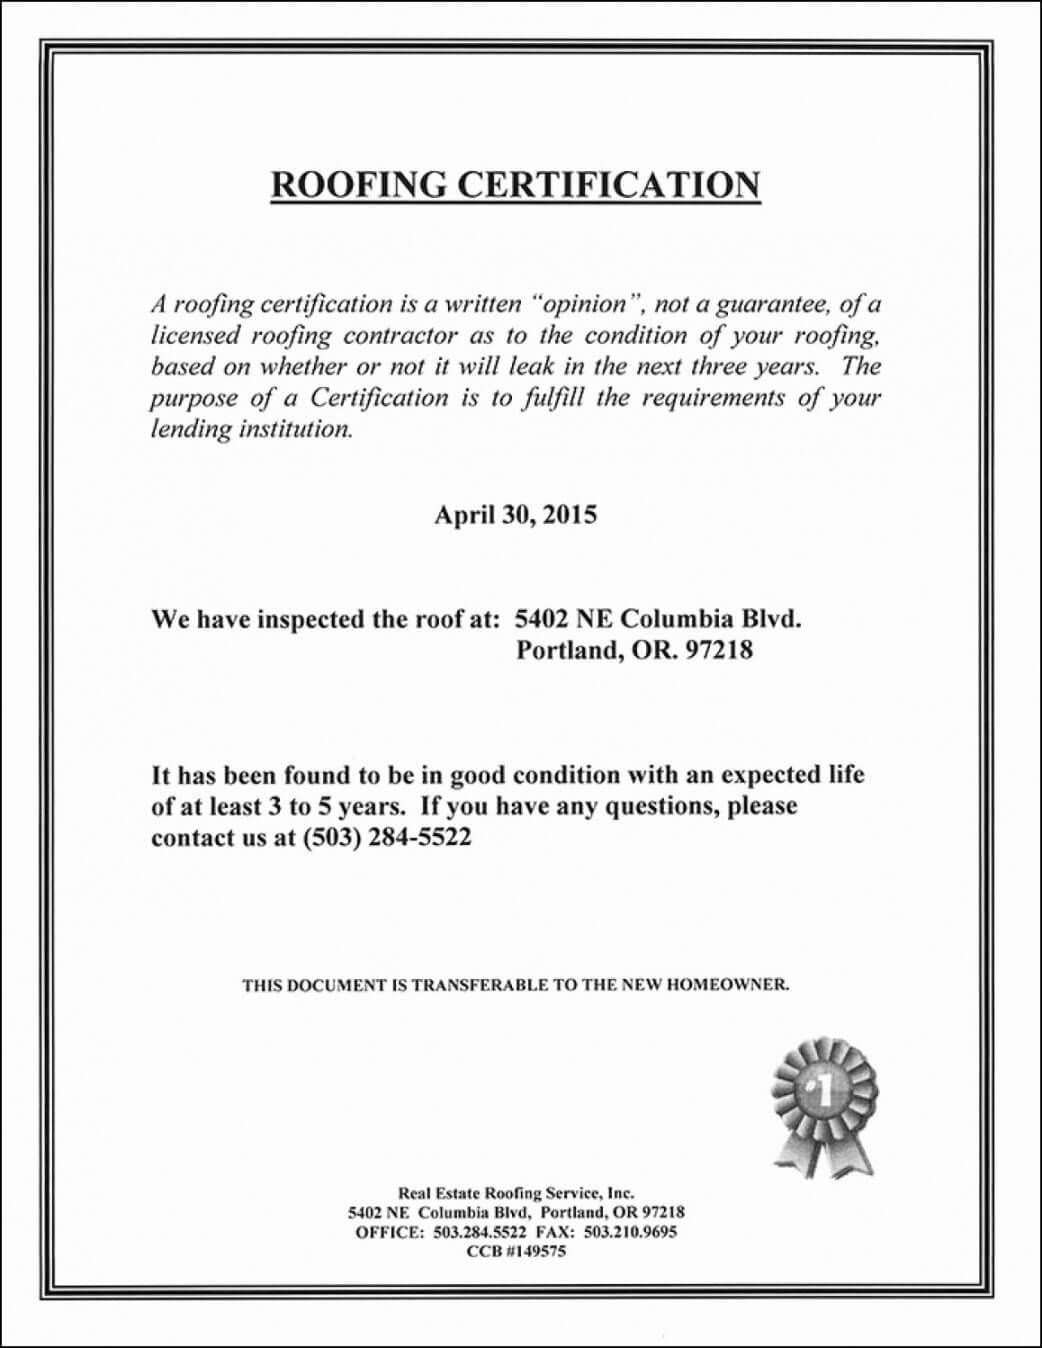 Roofing Certificate Of Completion Template Lovely Roof throughout Roof Certification Template